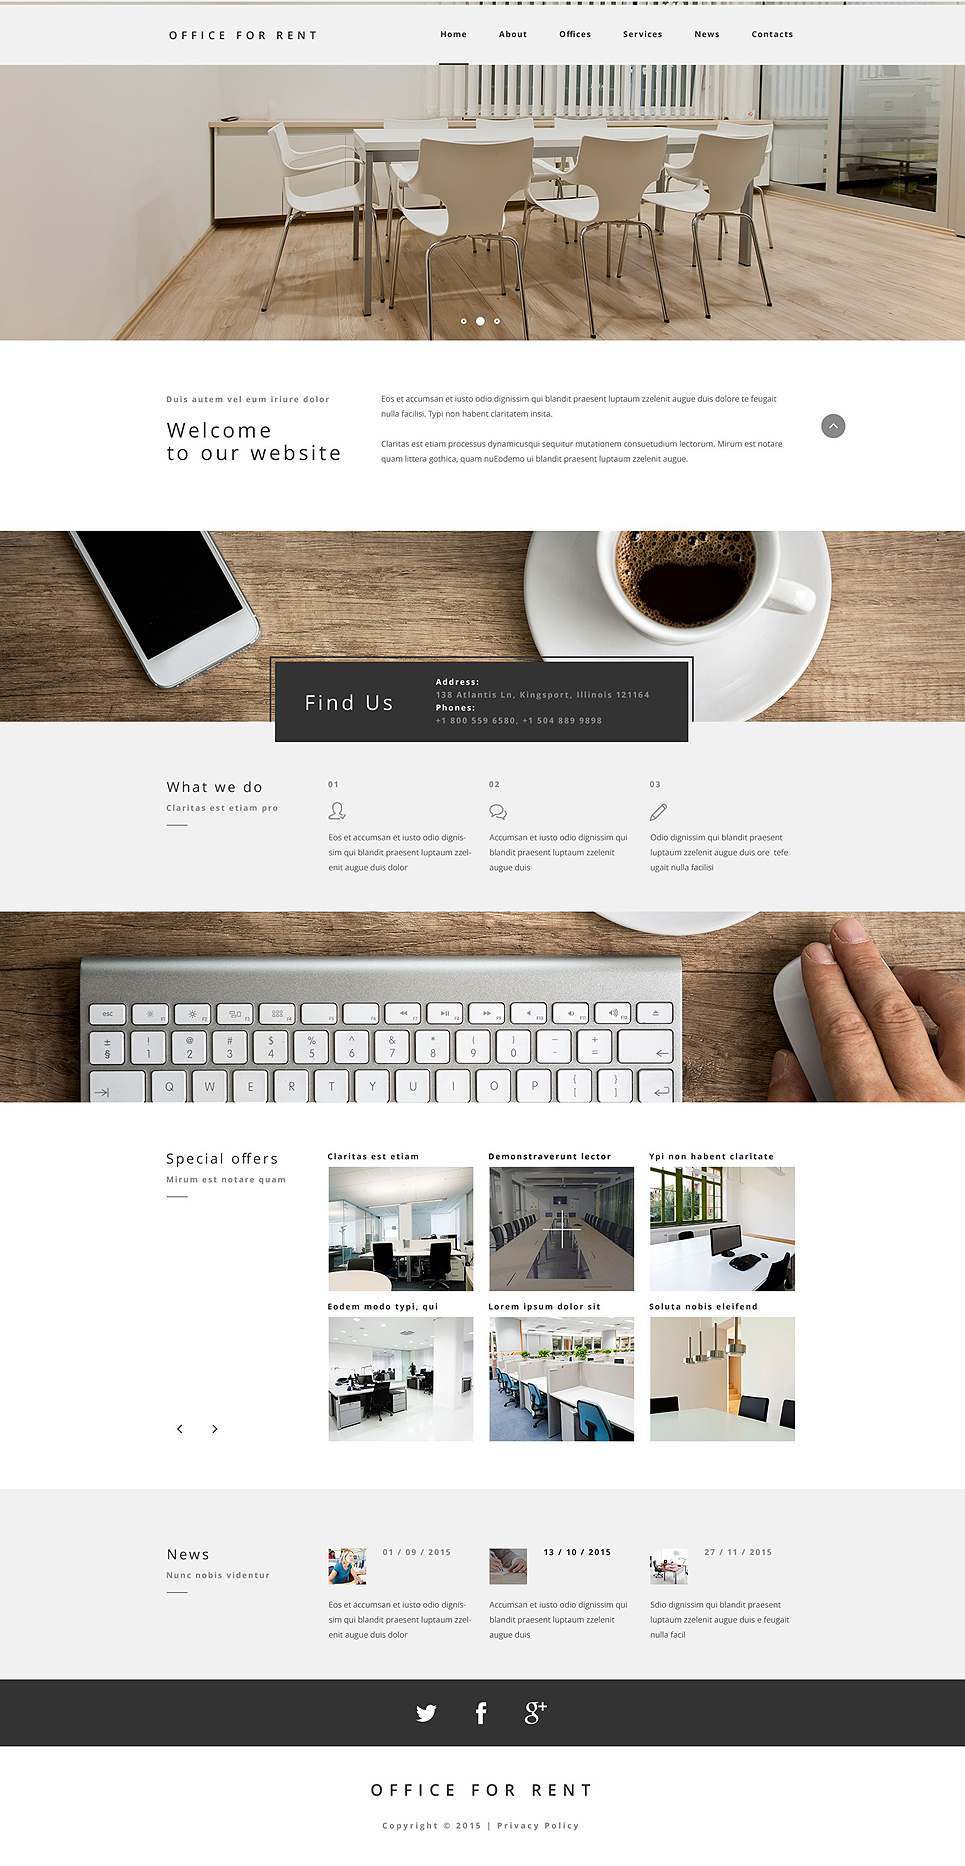 Office for Rent template illustration image